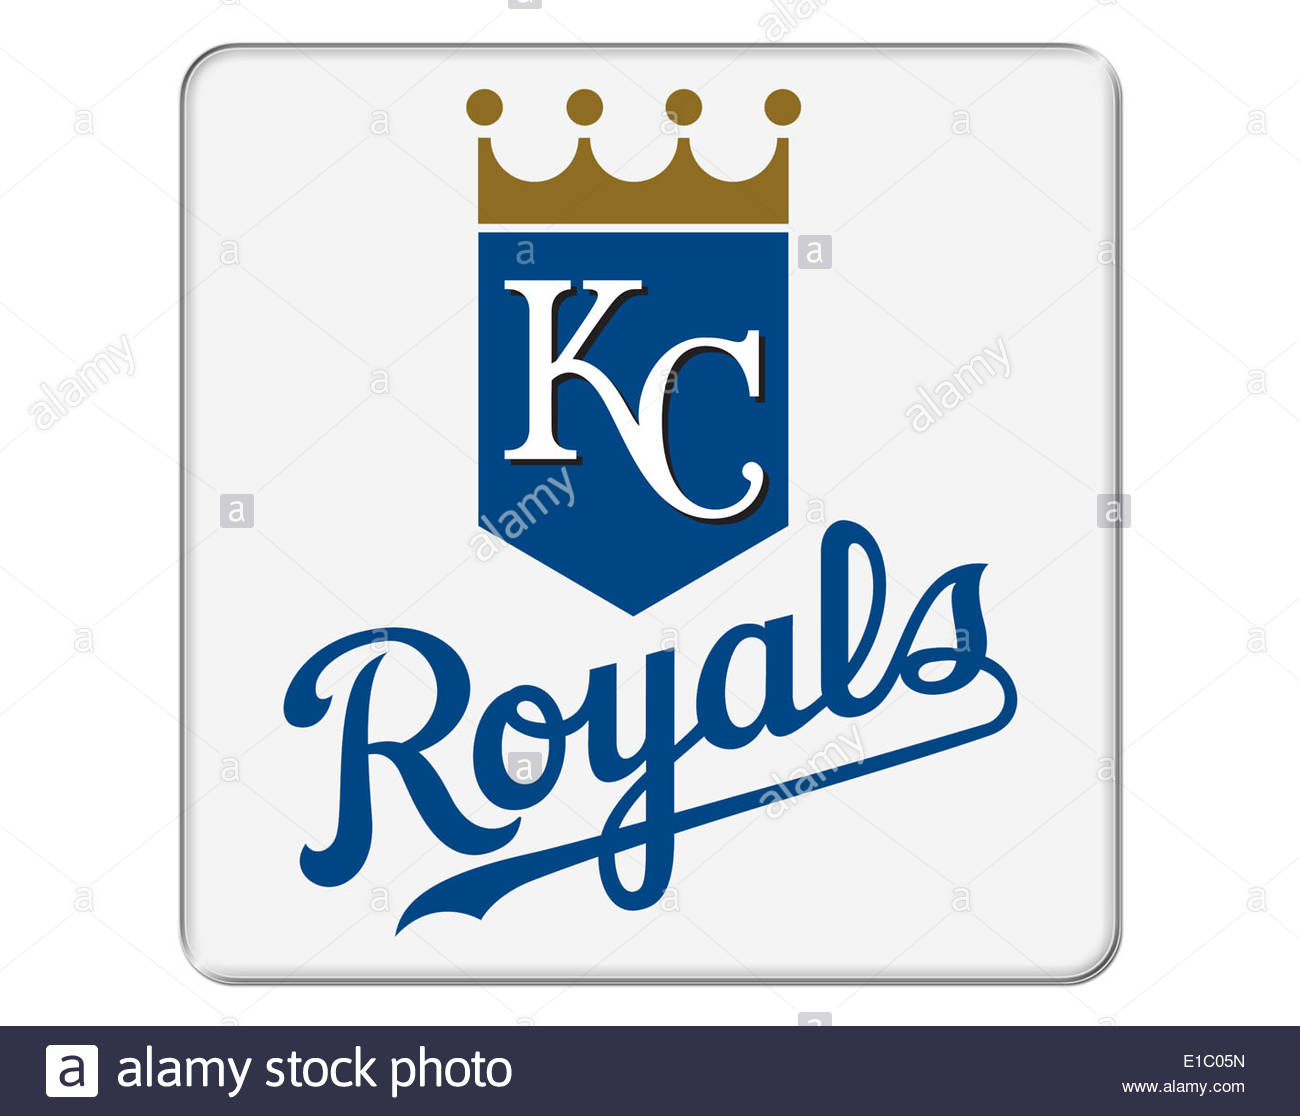 Kansas City Royals icon logo isolated app button - Stock Image